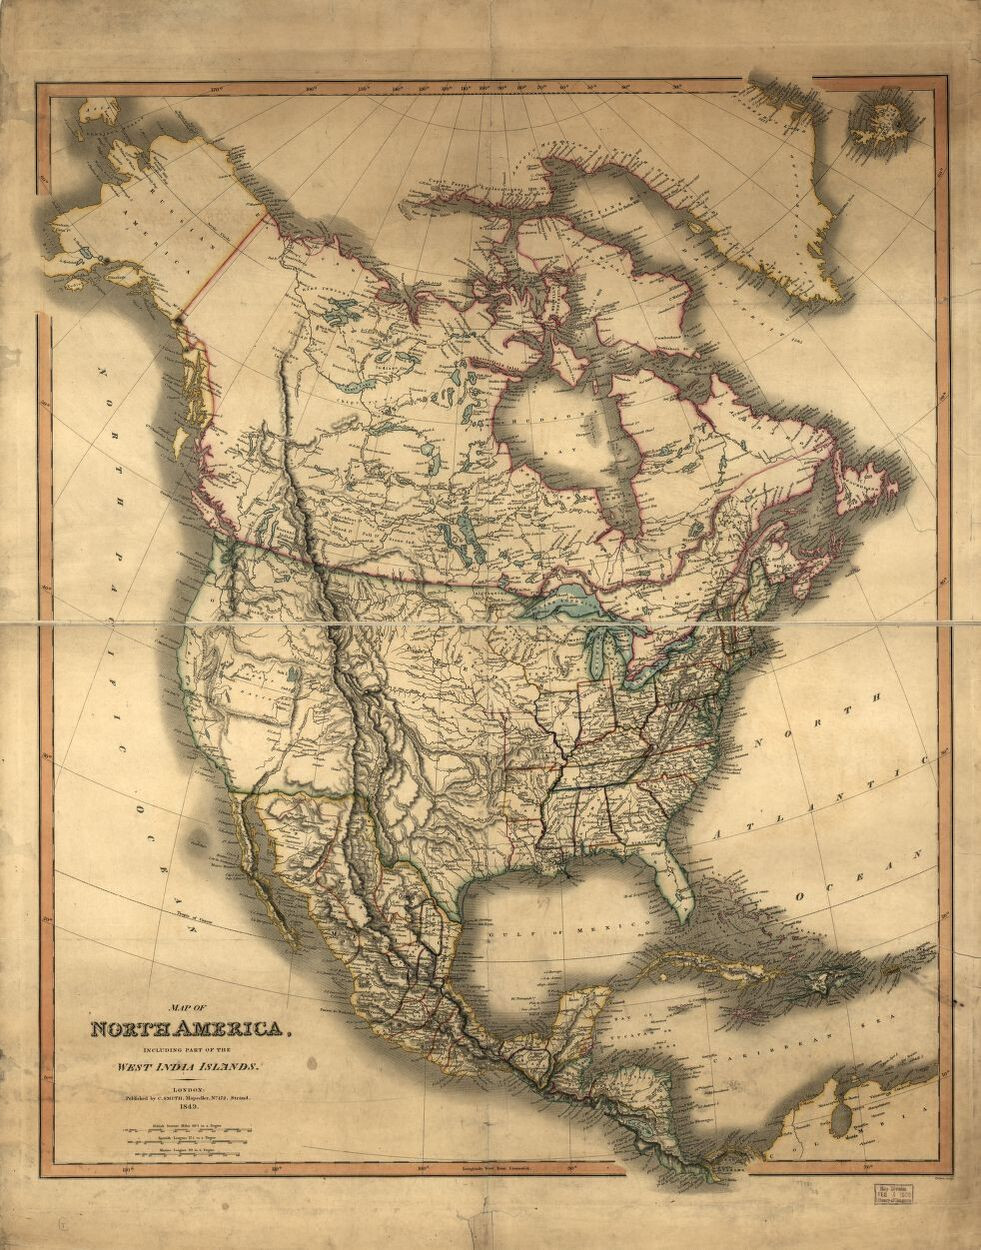 Map of North America from 1849 - Library of Congress